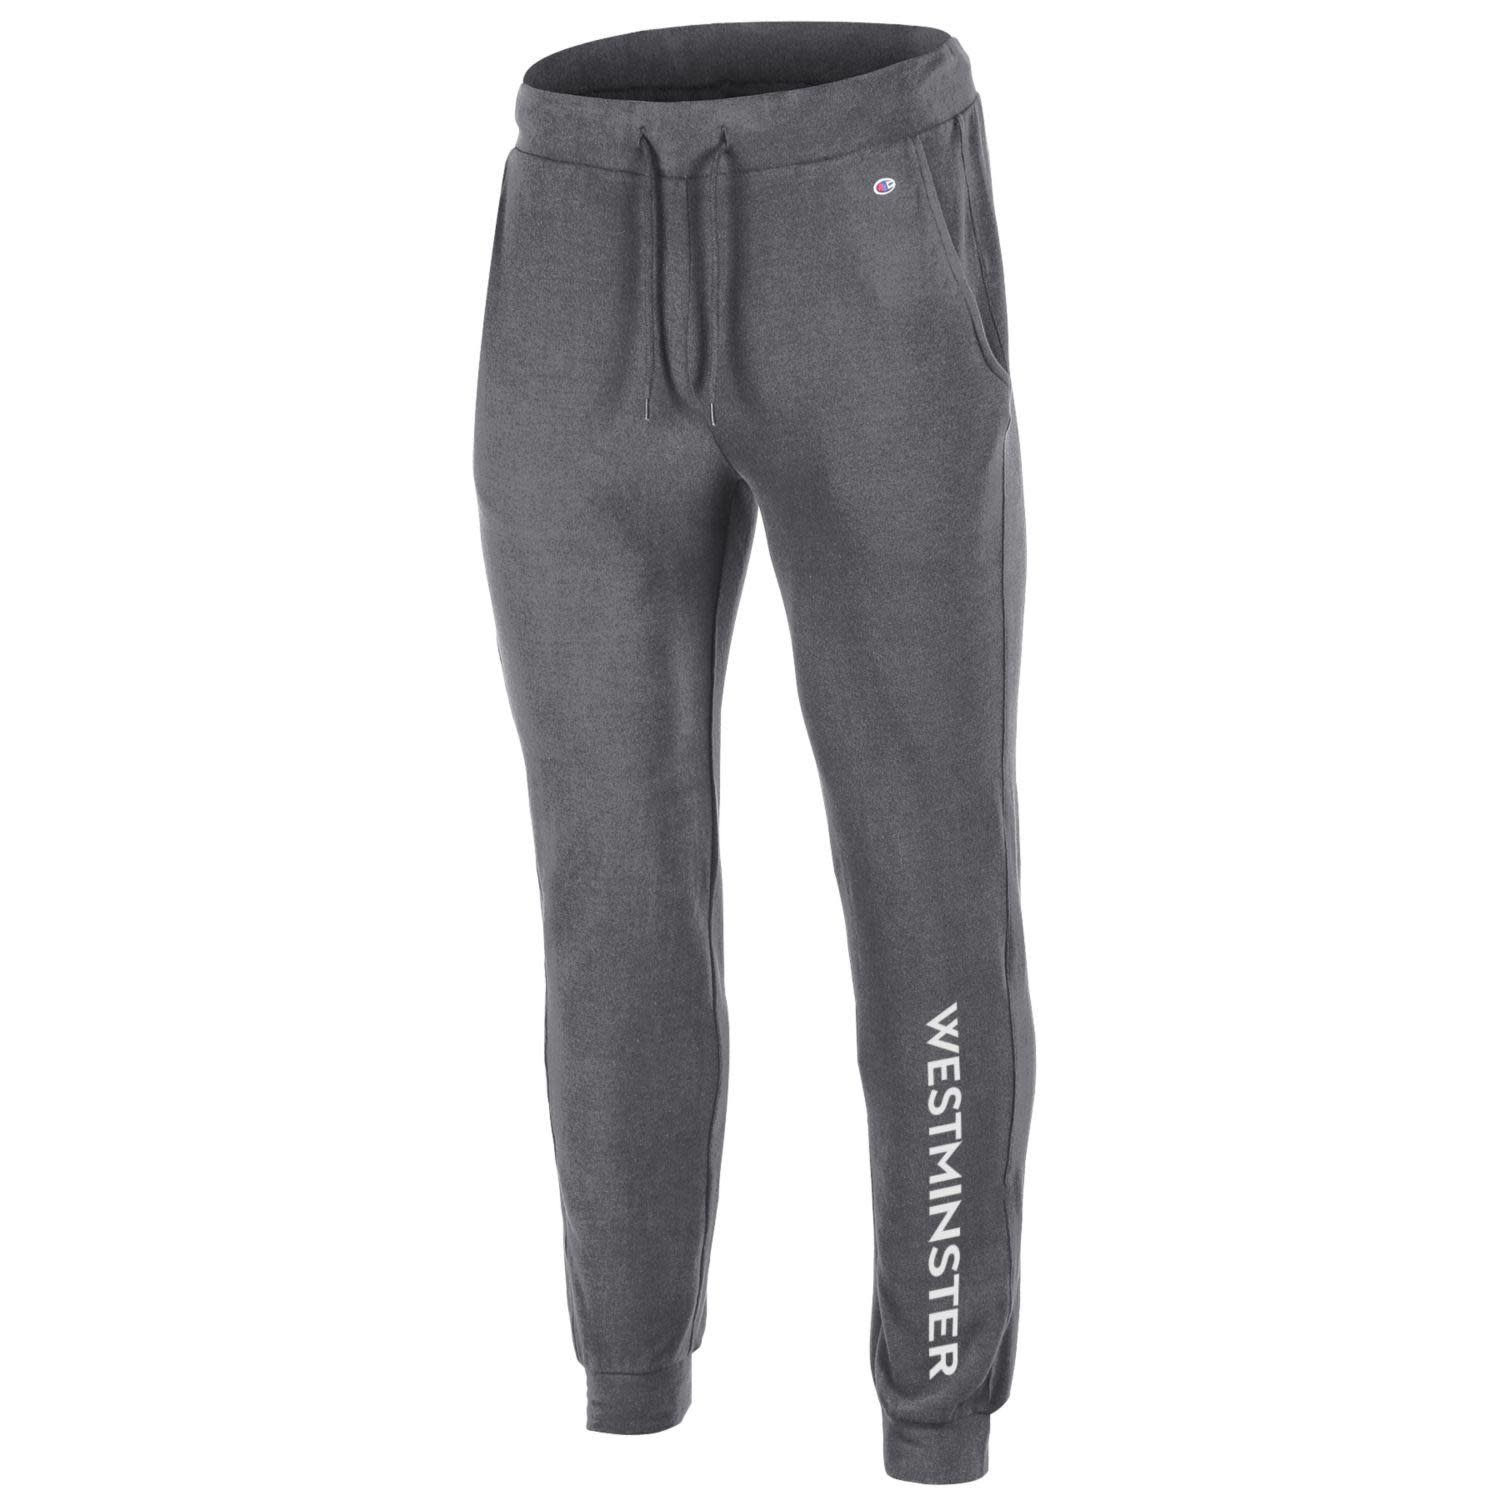 Champion Pants: Champion Lounge w Vertical WM